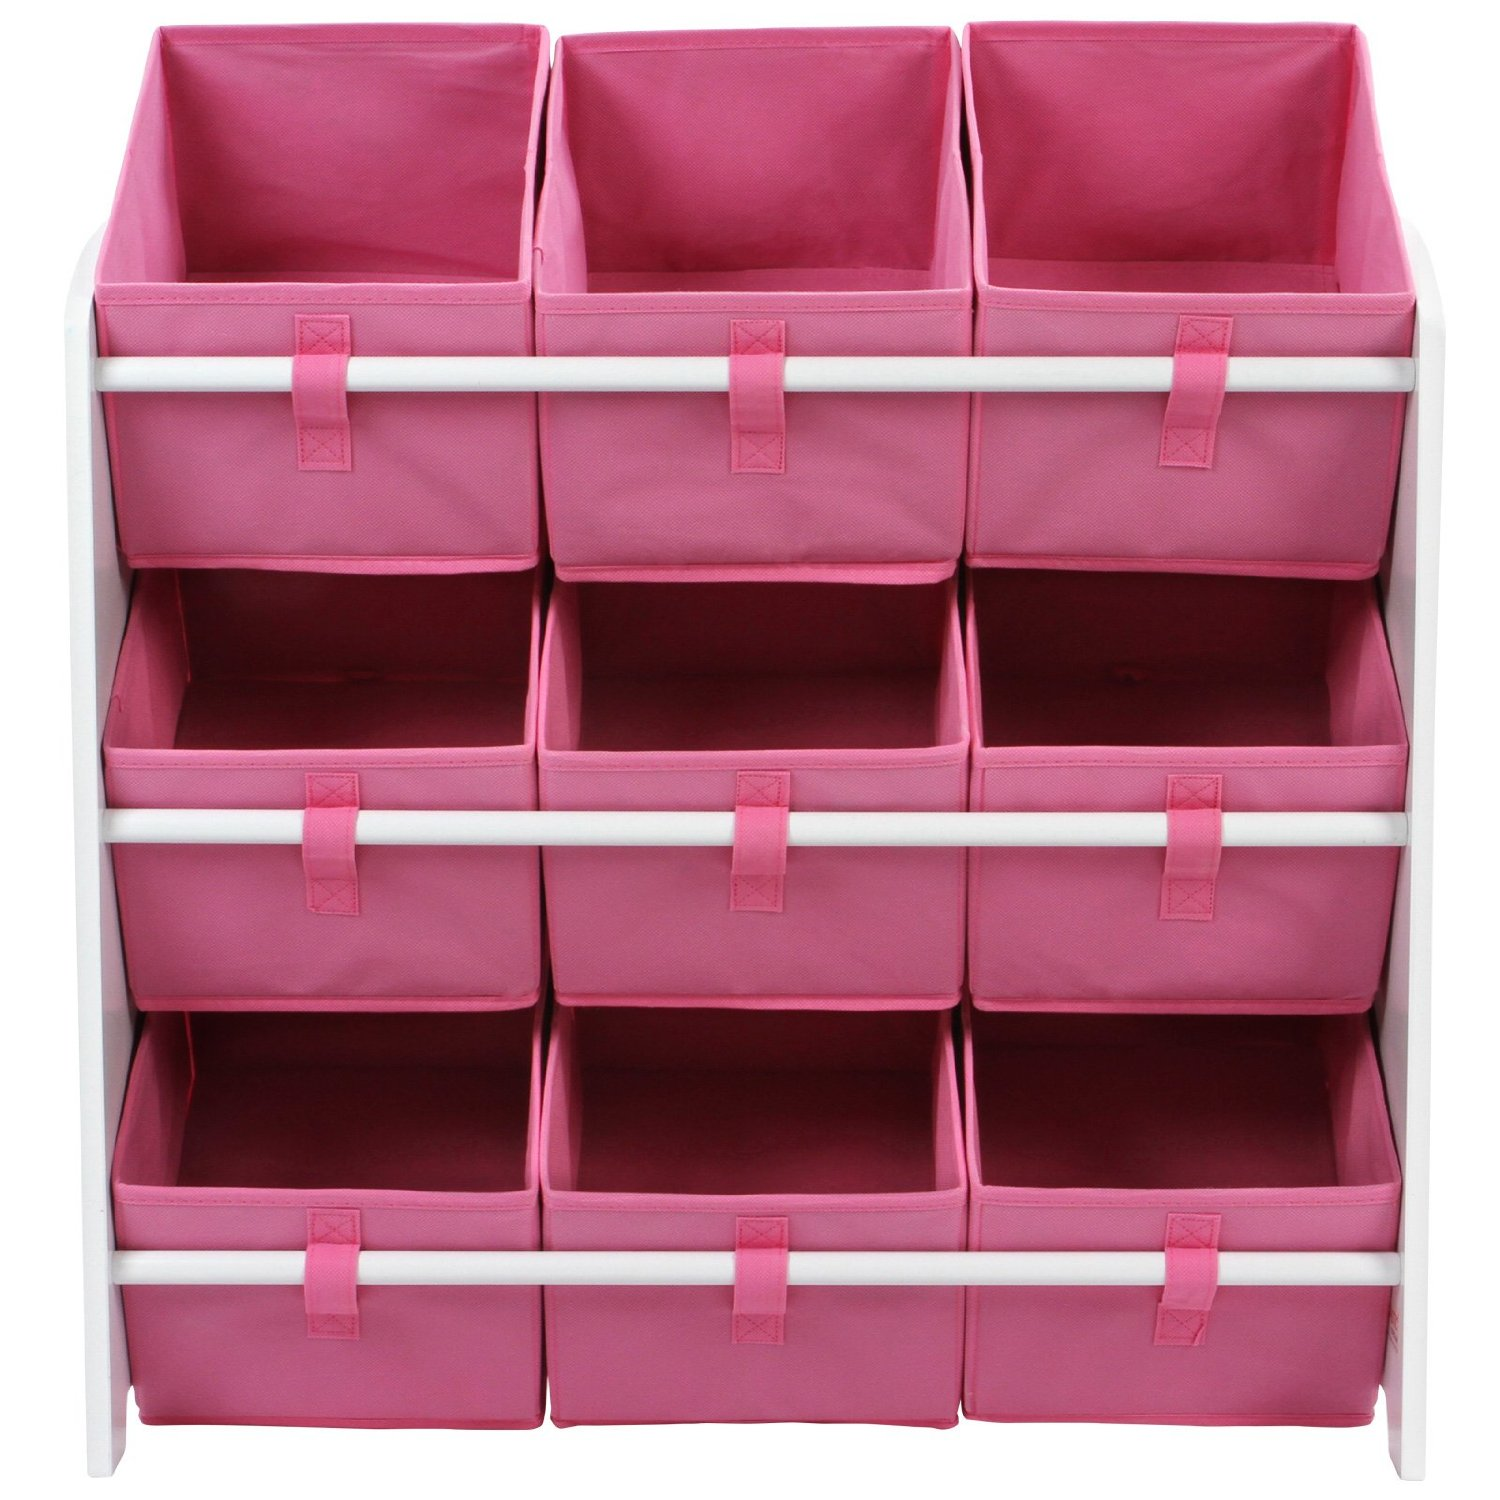 infantastic kinderregal mit boxen pink kinderzimmer. Black Bedroom Furniture Sets. Home Design Ideas